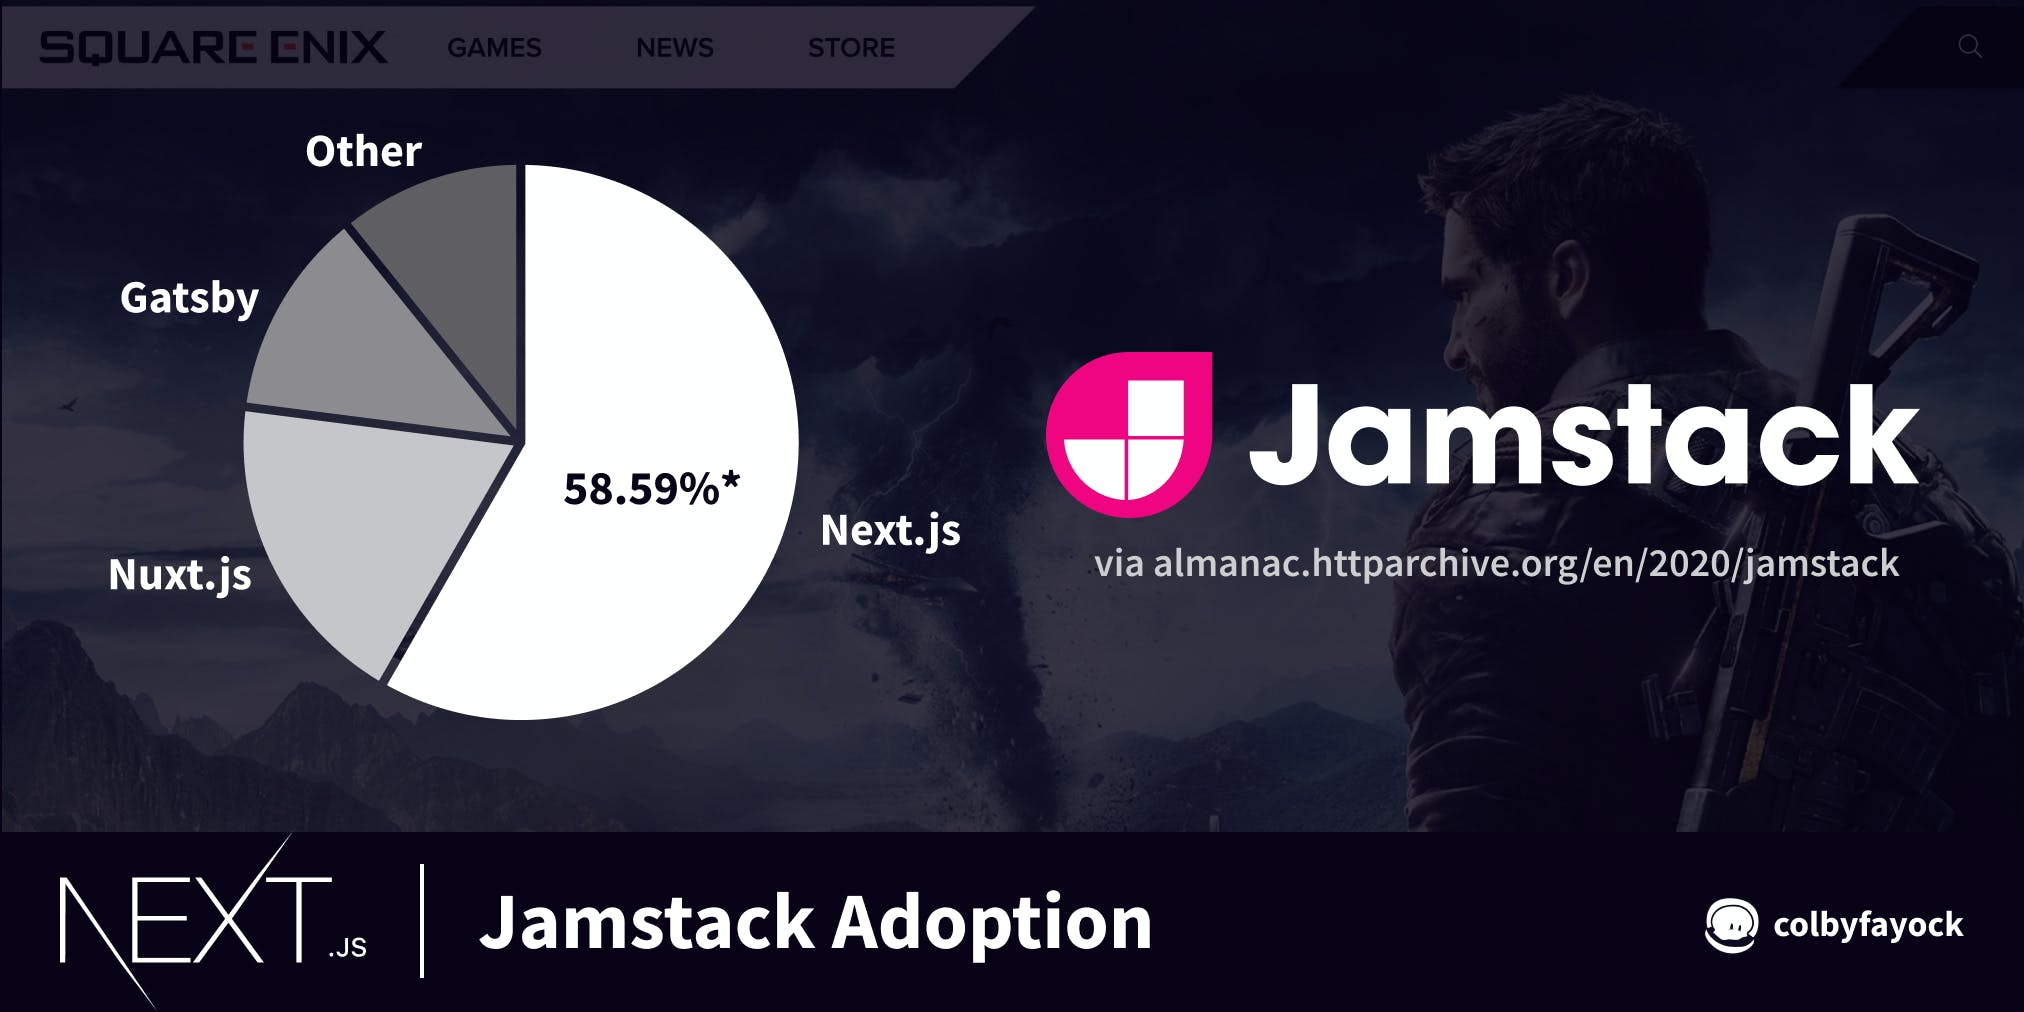 58.59% adoption in the Jamstack community